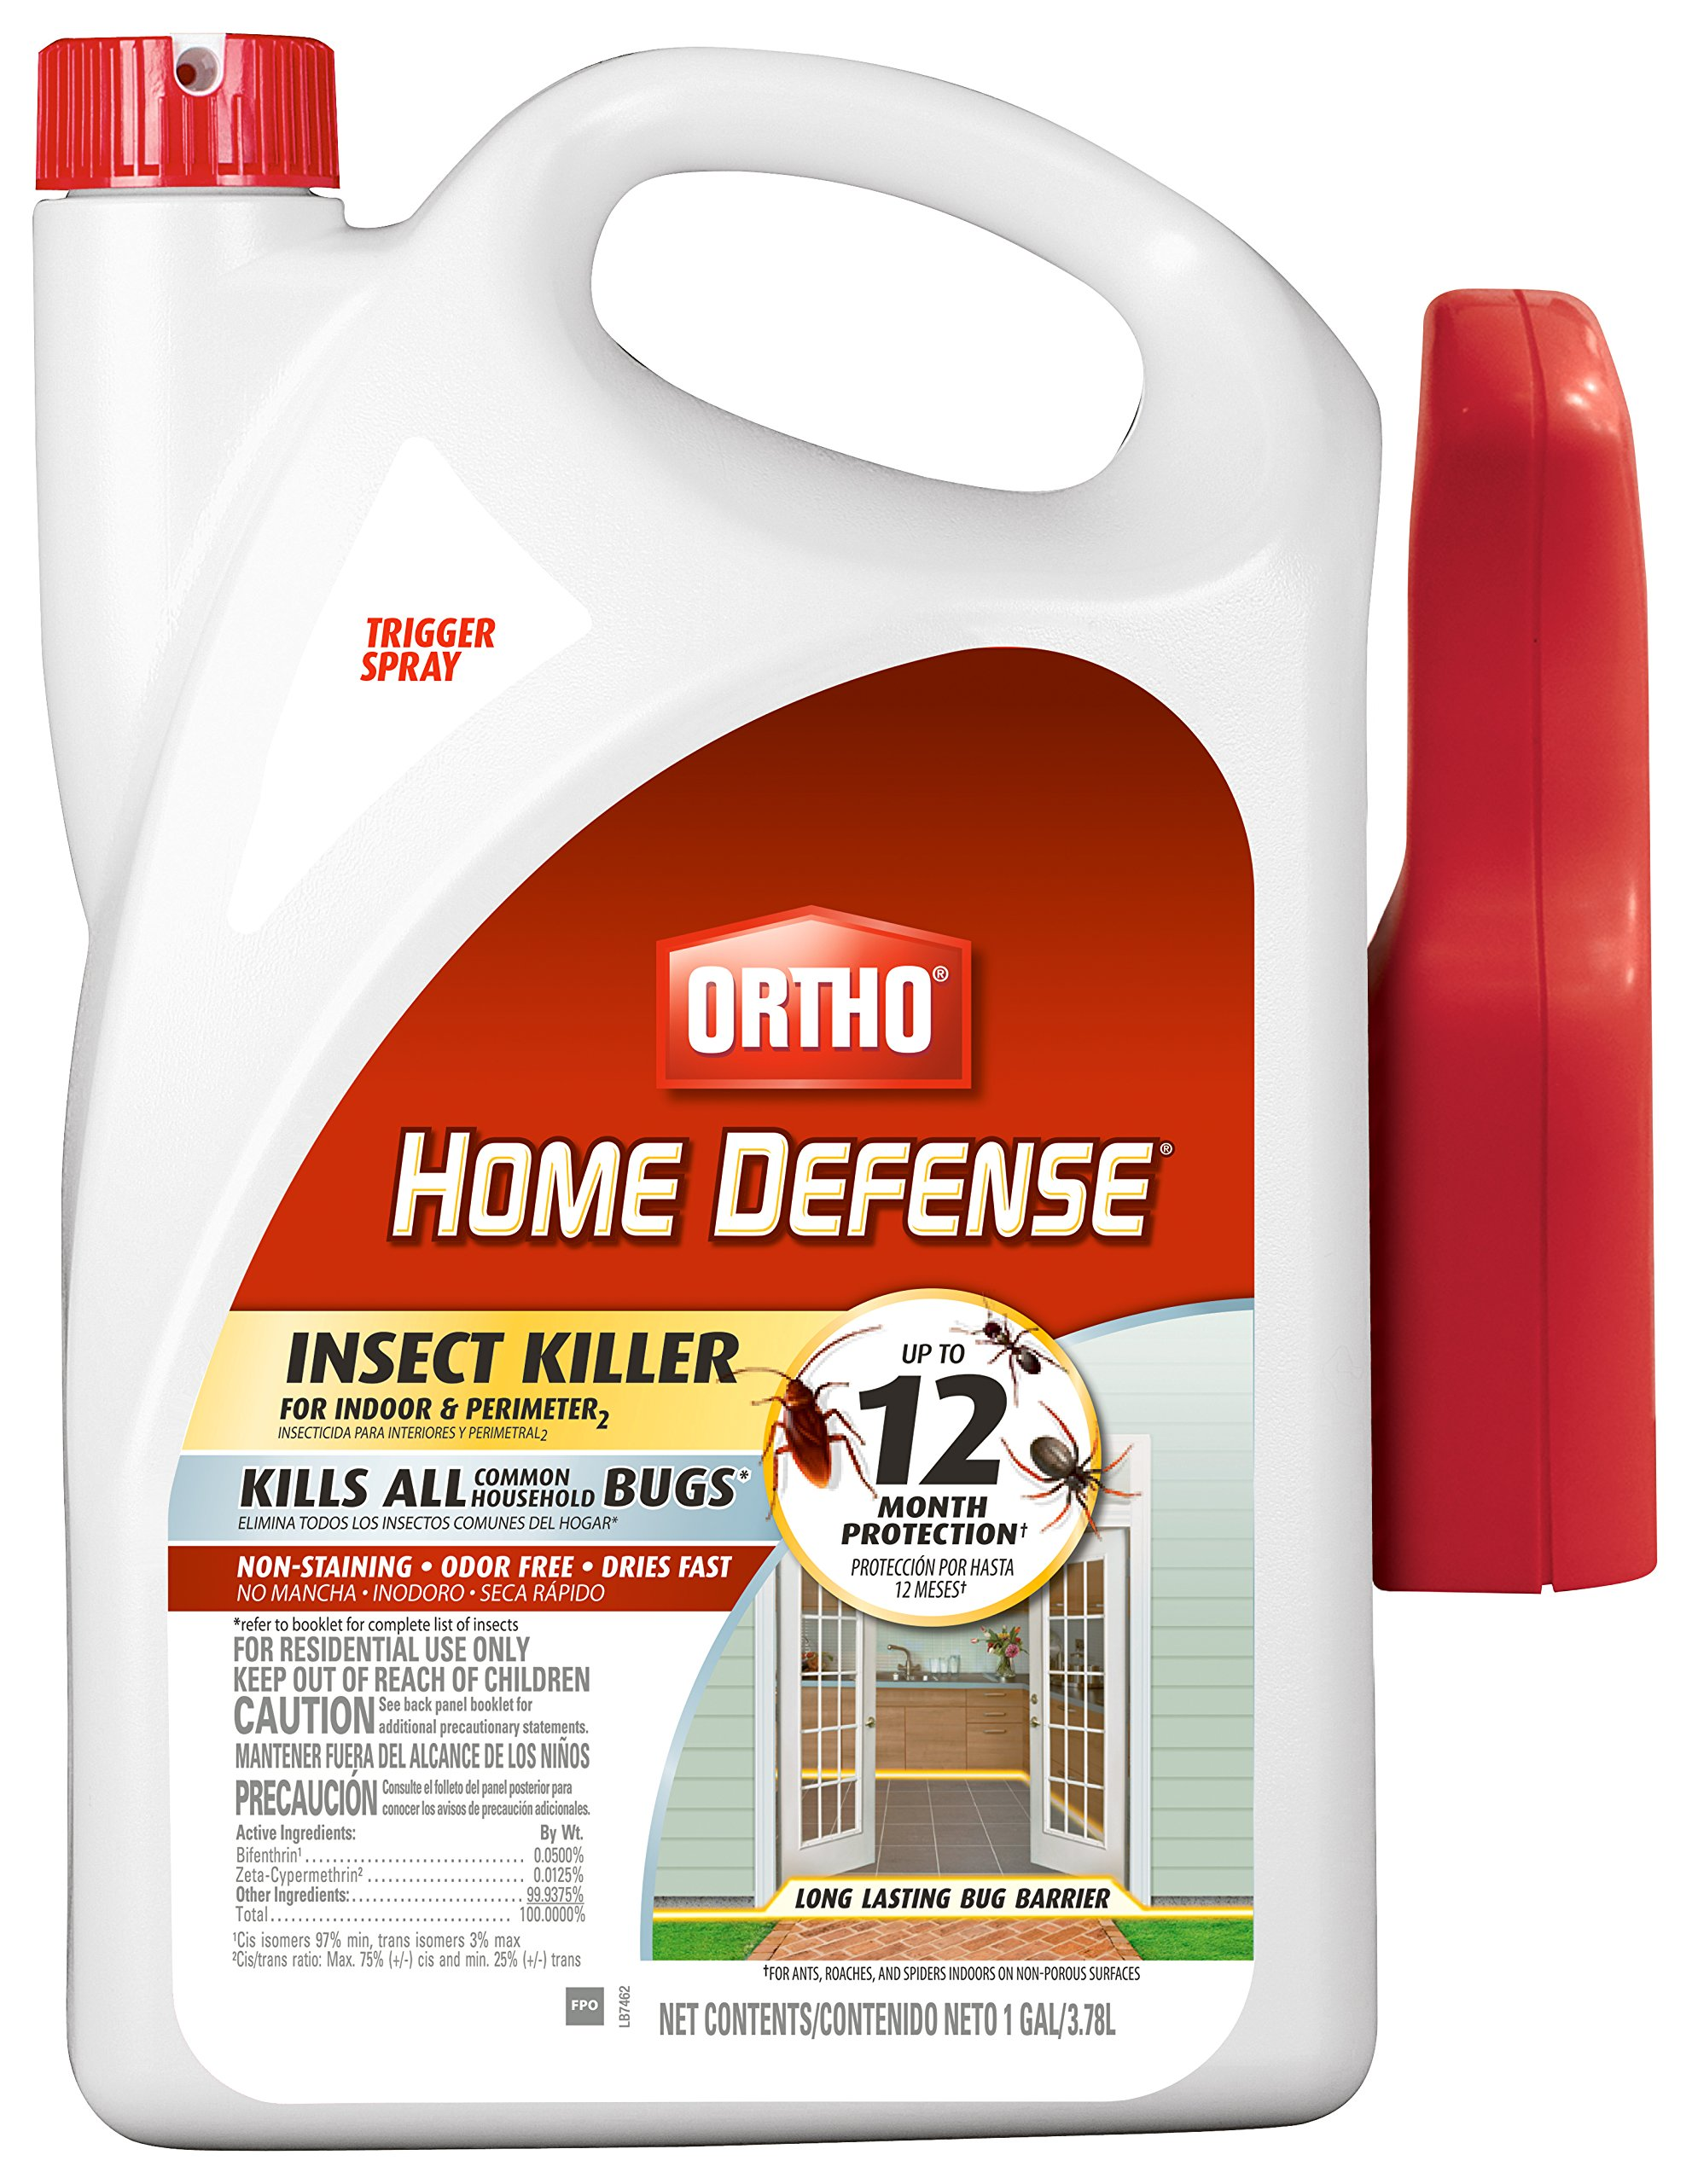 Ortho 0220810 Home Defense Max Insect Killer for Indoor and Perimeter RTU Trigger